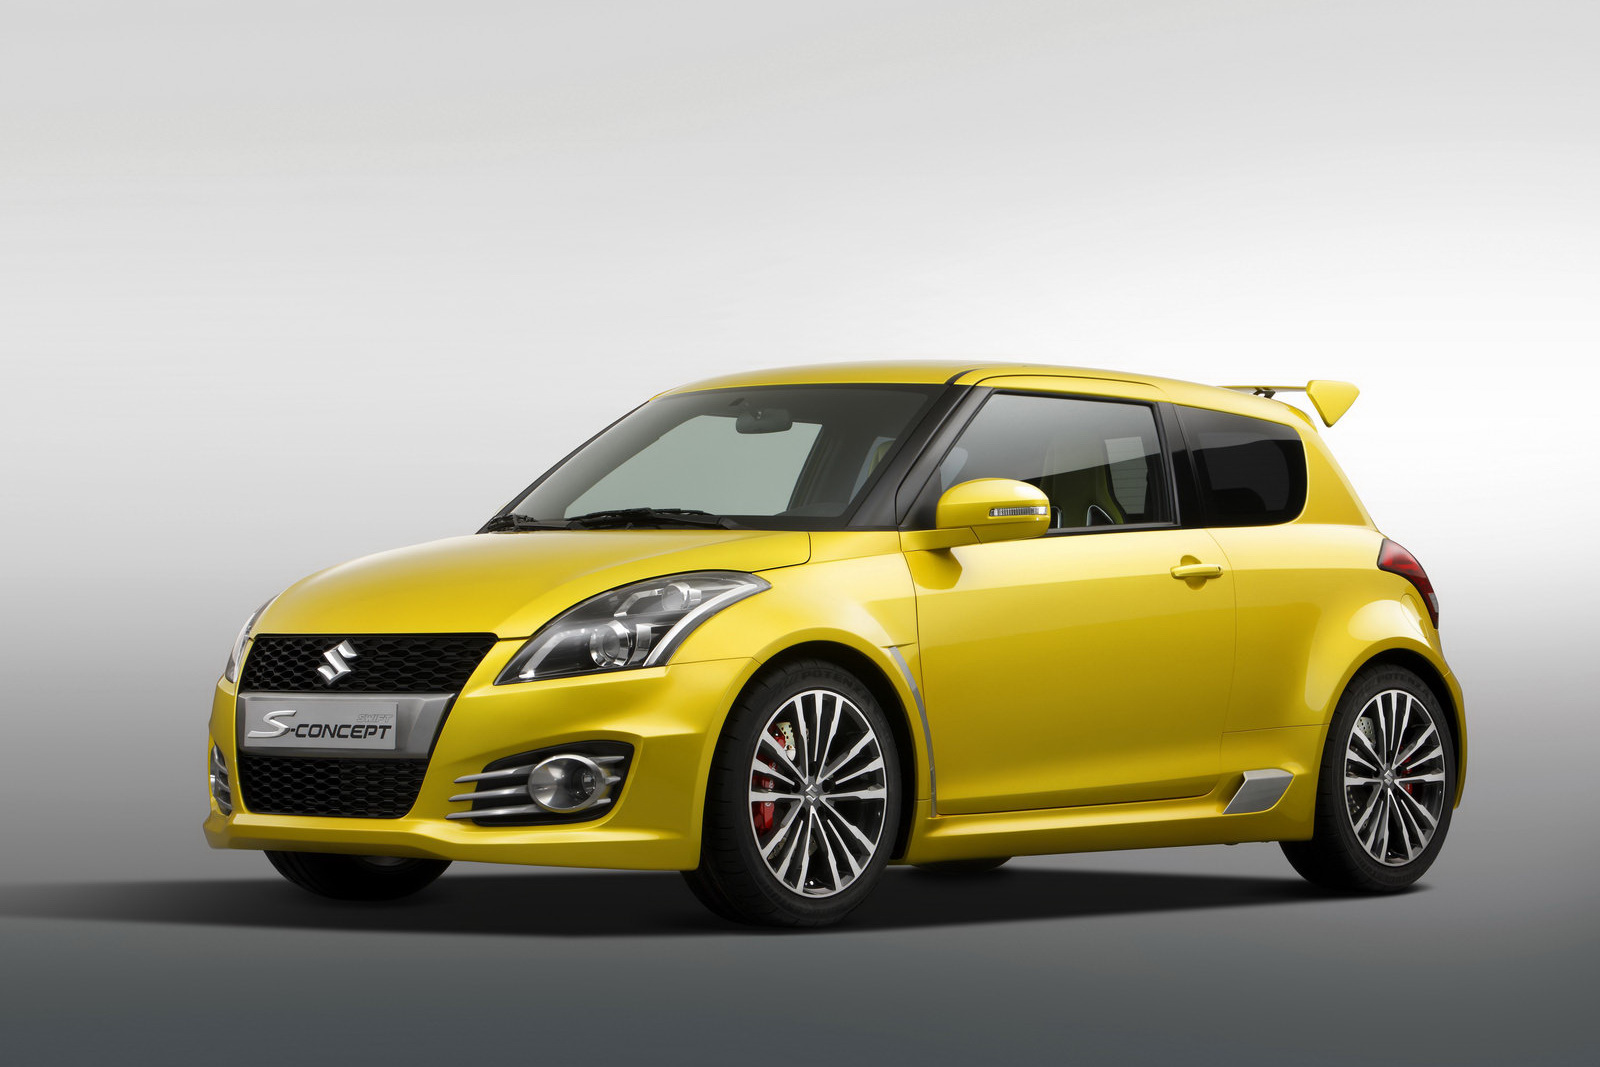 Suzuki Swift S Concept Showcases The Upcoming Swift Sport